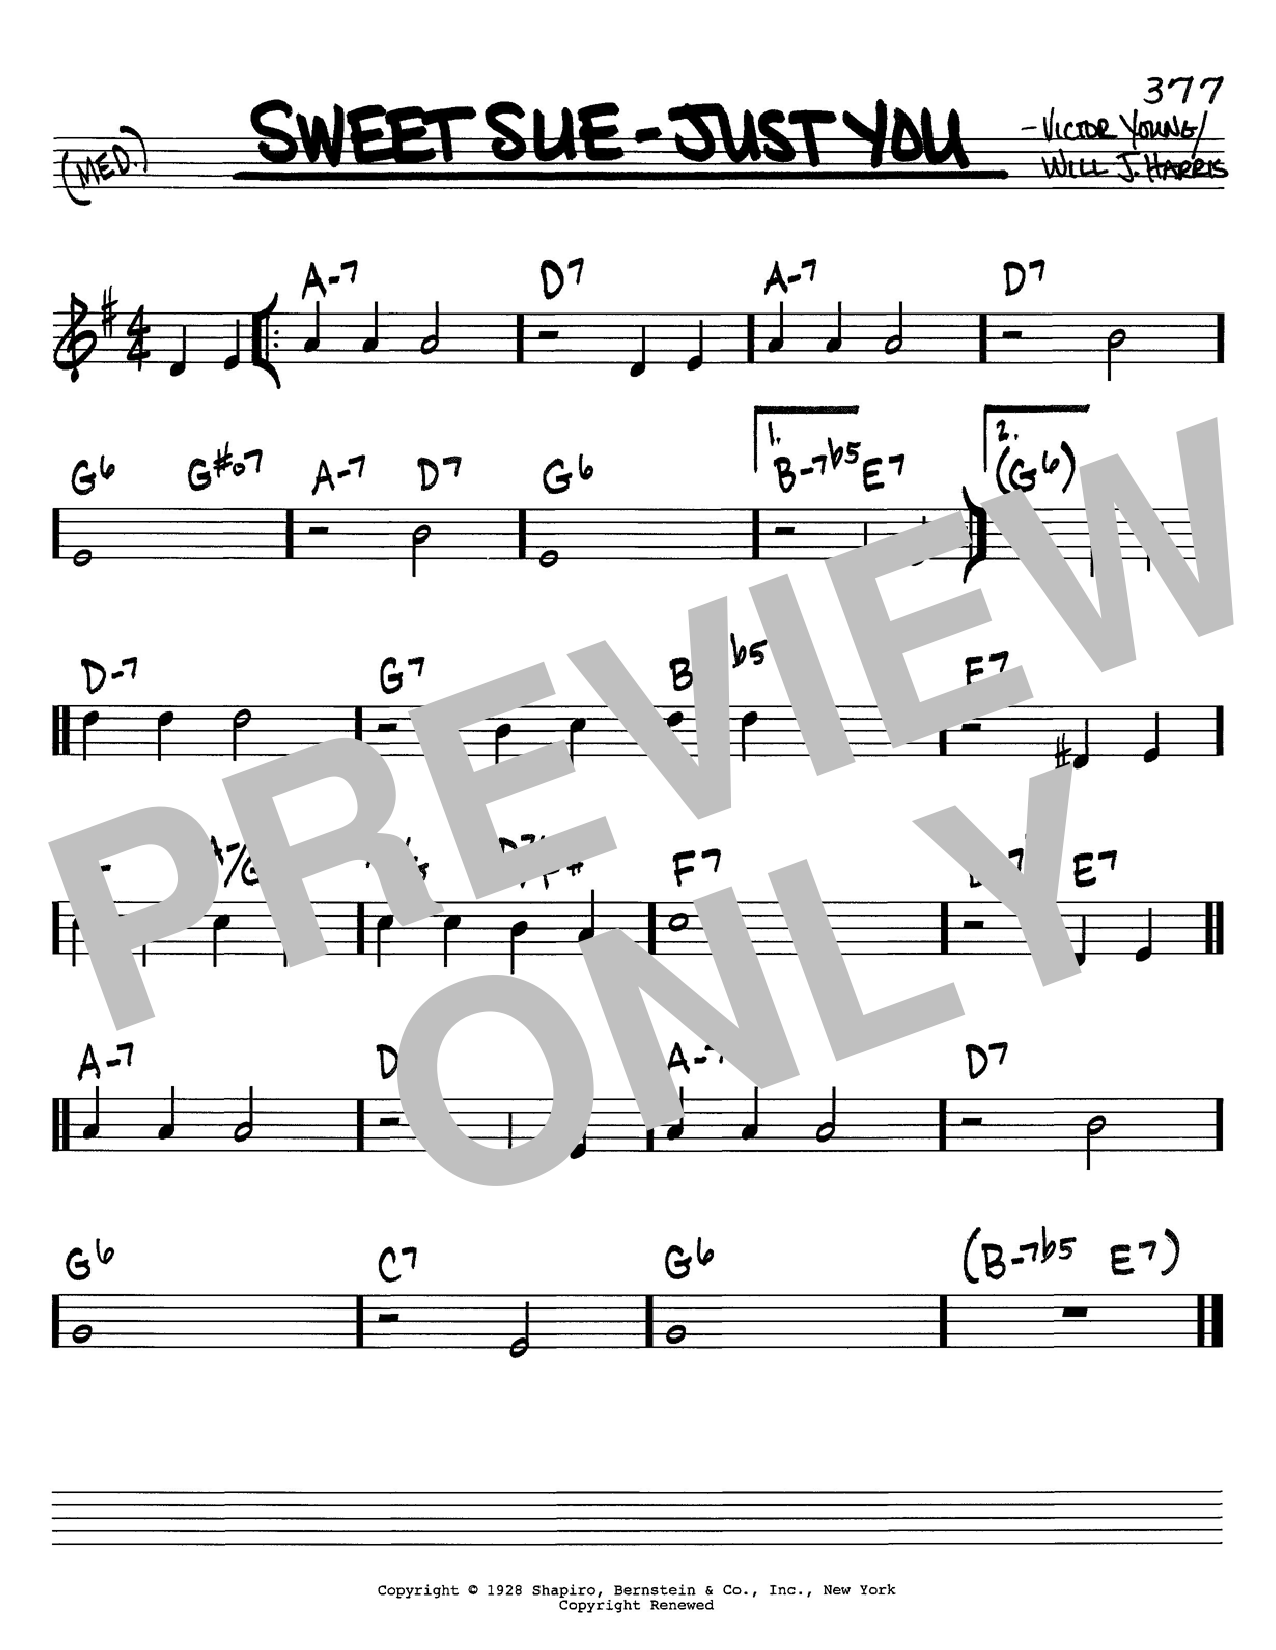 Will J. Harris Sweet Sue-Just You sheet music notes and chords. Download Printable PDF.